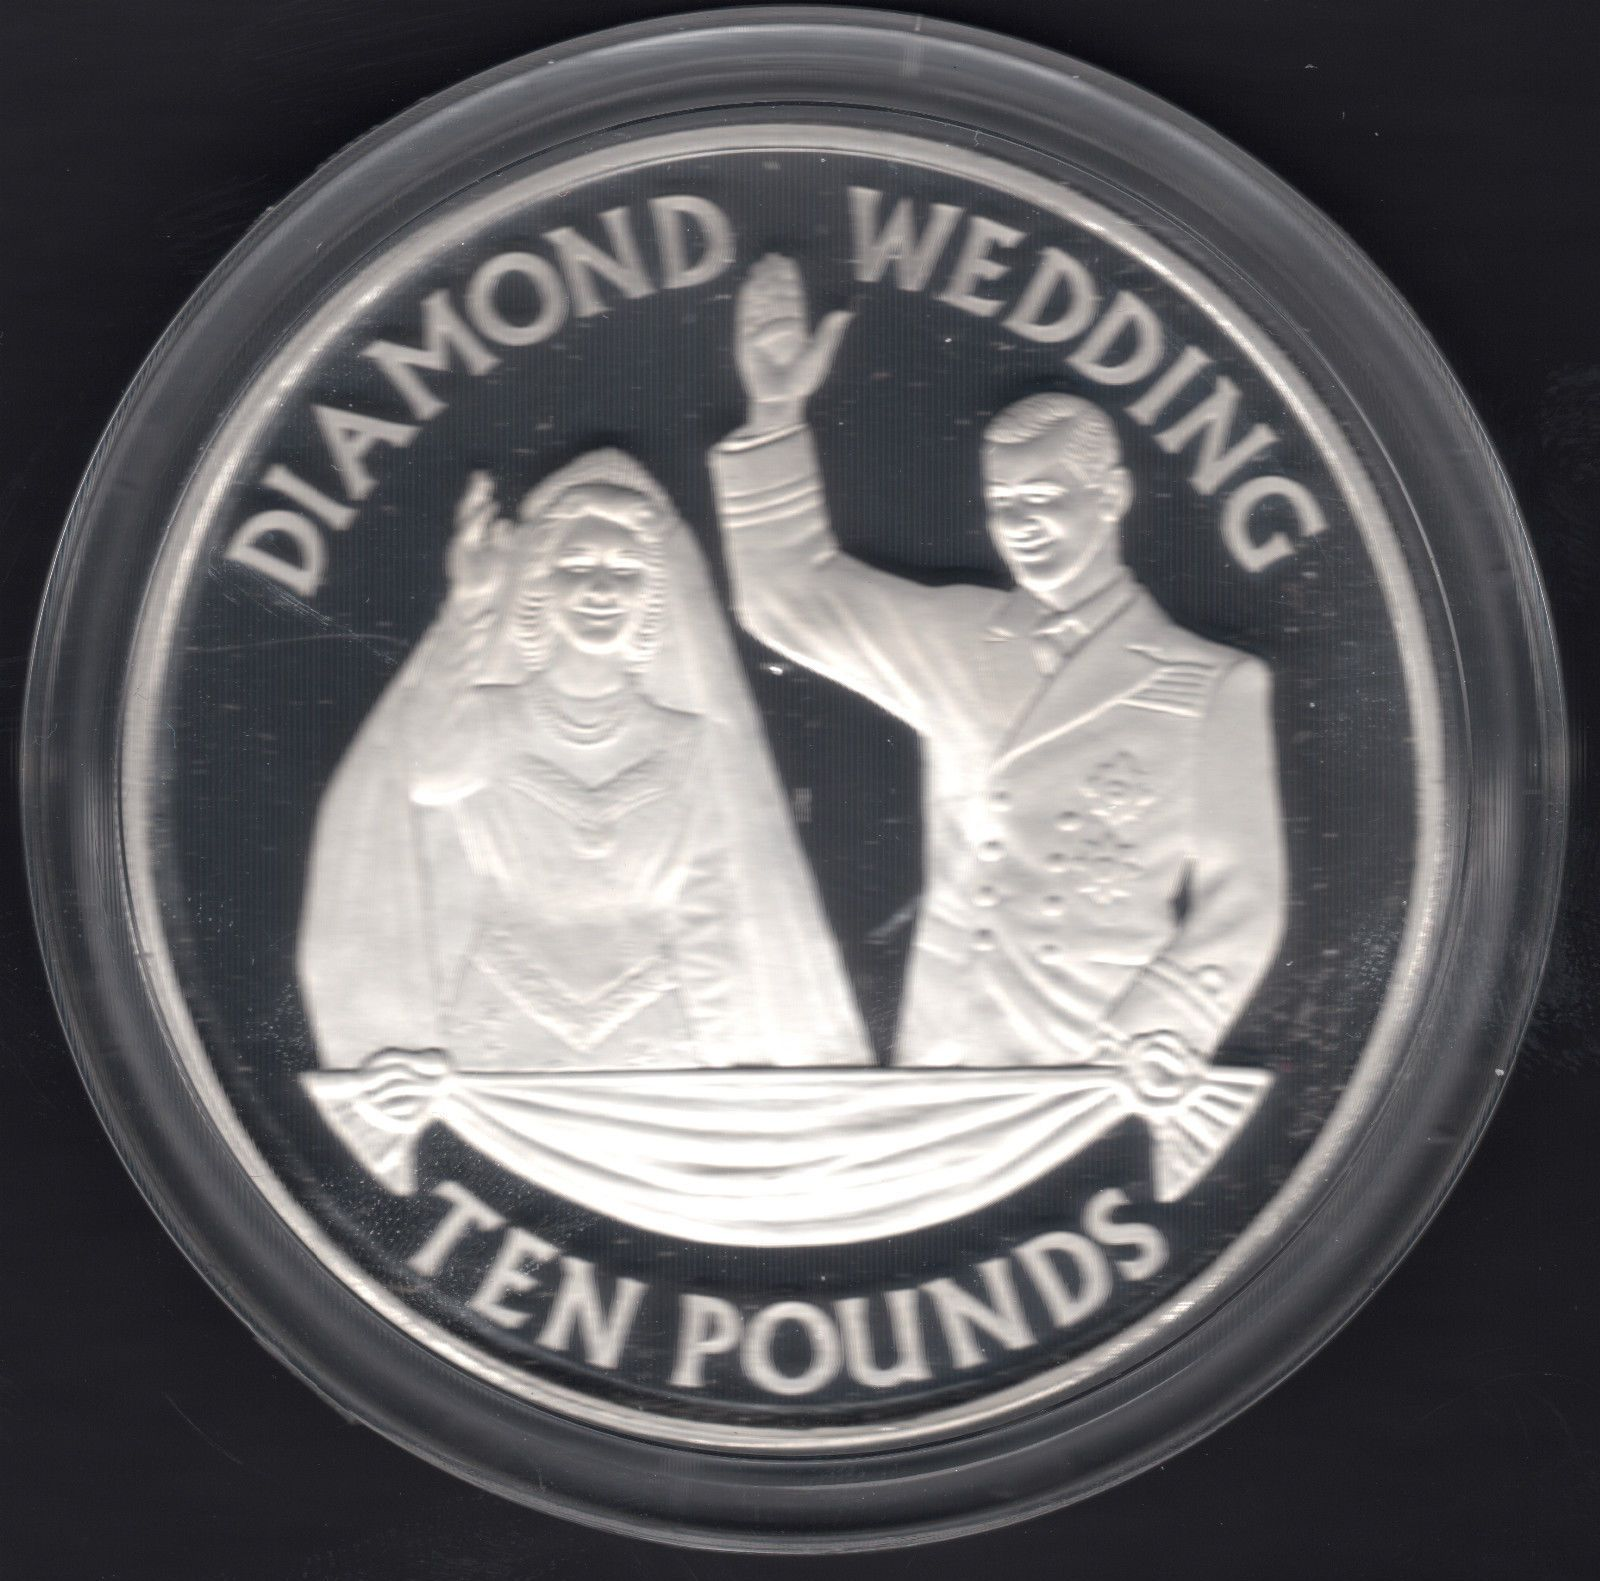 coin wedding proof platinum the royal piedfort anniversary coverlimited of product pnc